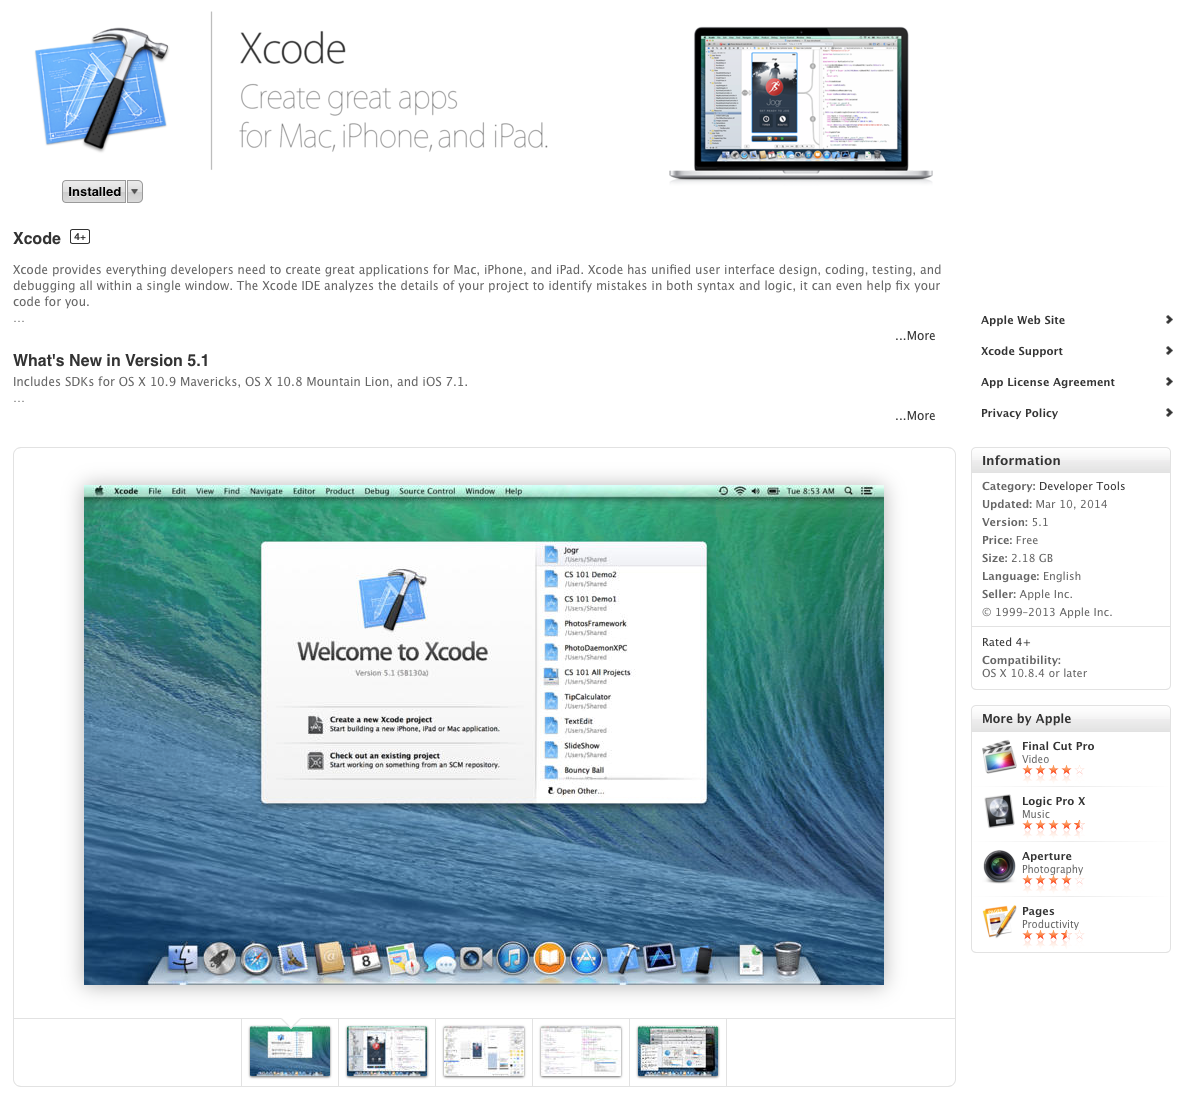 Download and install Xcode via the App Store app in OS X